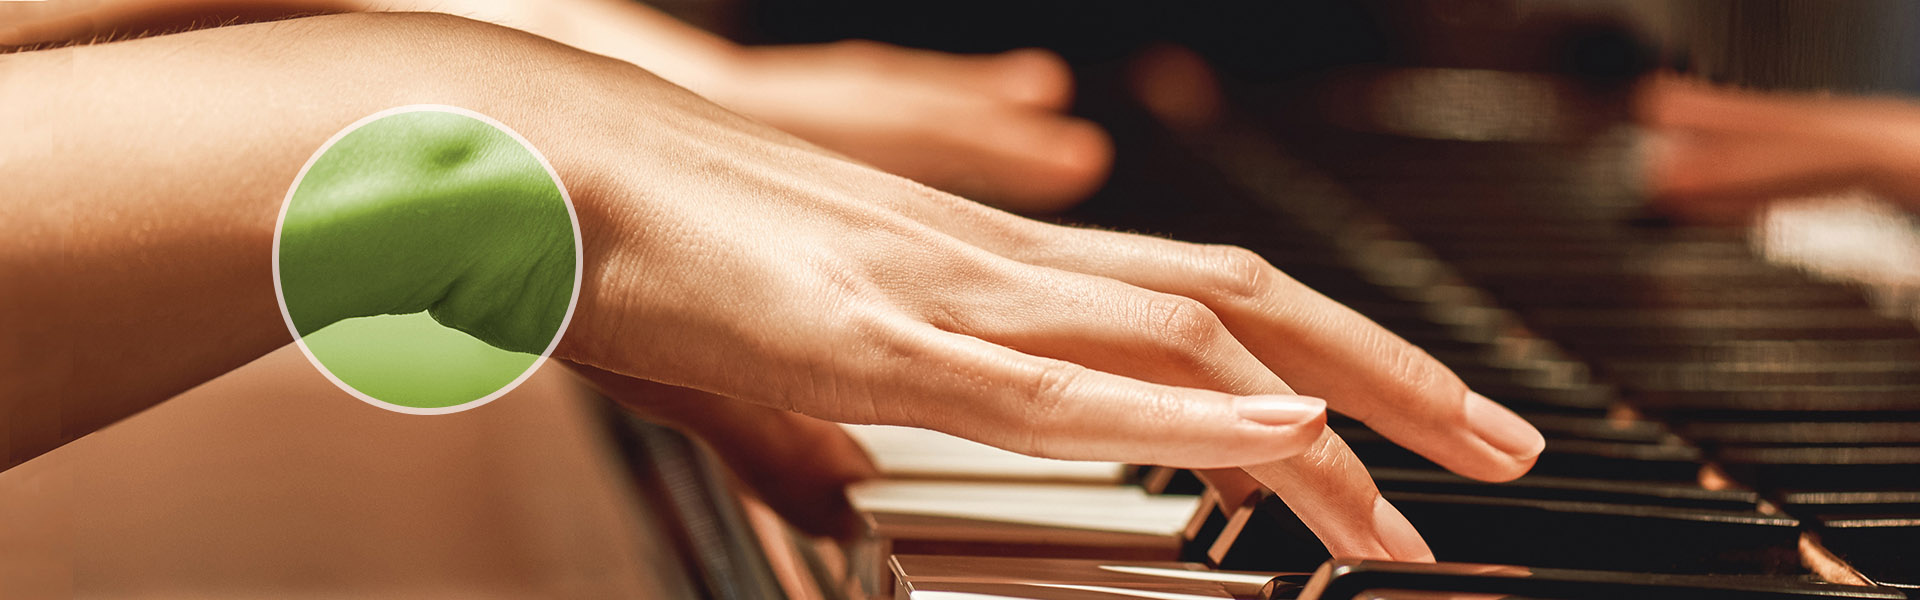 Carpal Tunnel Syndrome Repetitive-motion or Piano Practice and Performance